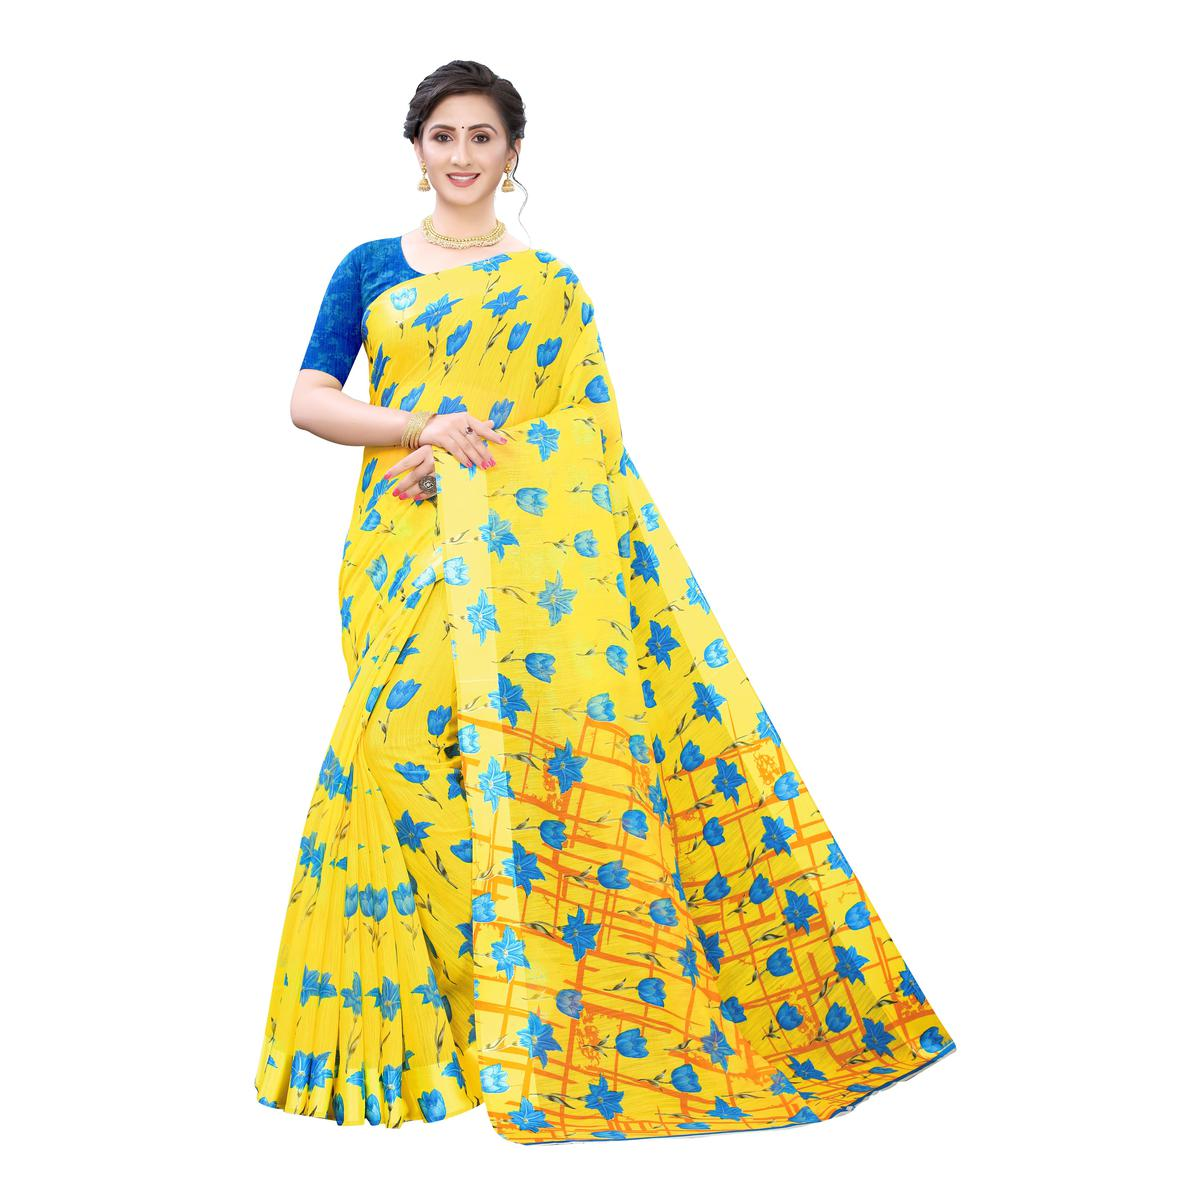 Ravishing Yellow-Blue Colored Casual Wear Floral Printed Linen Saree